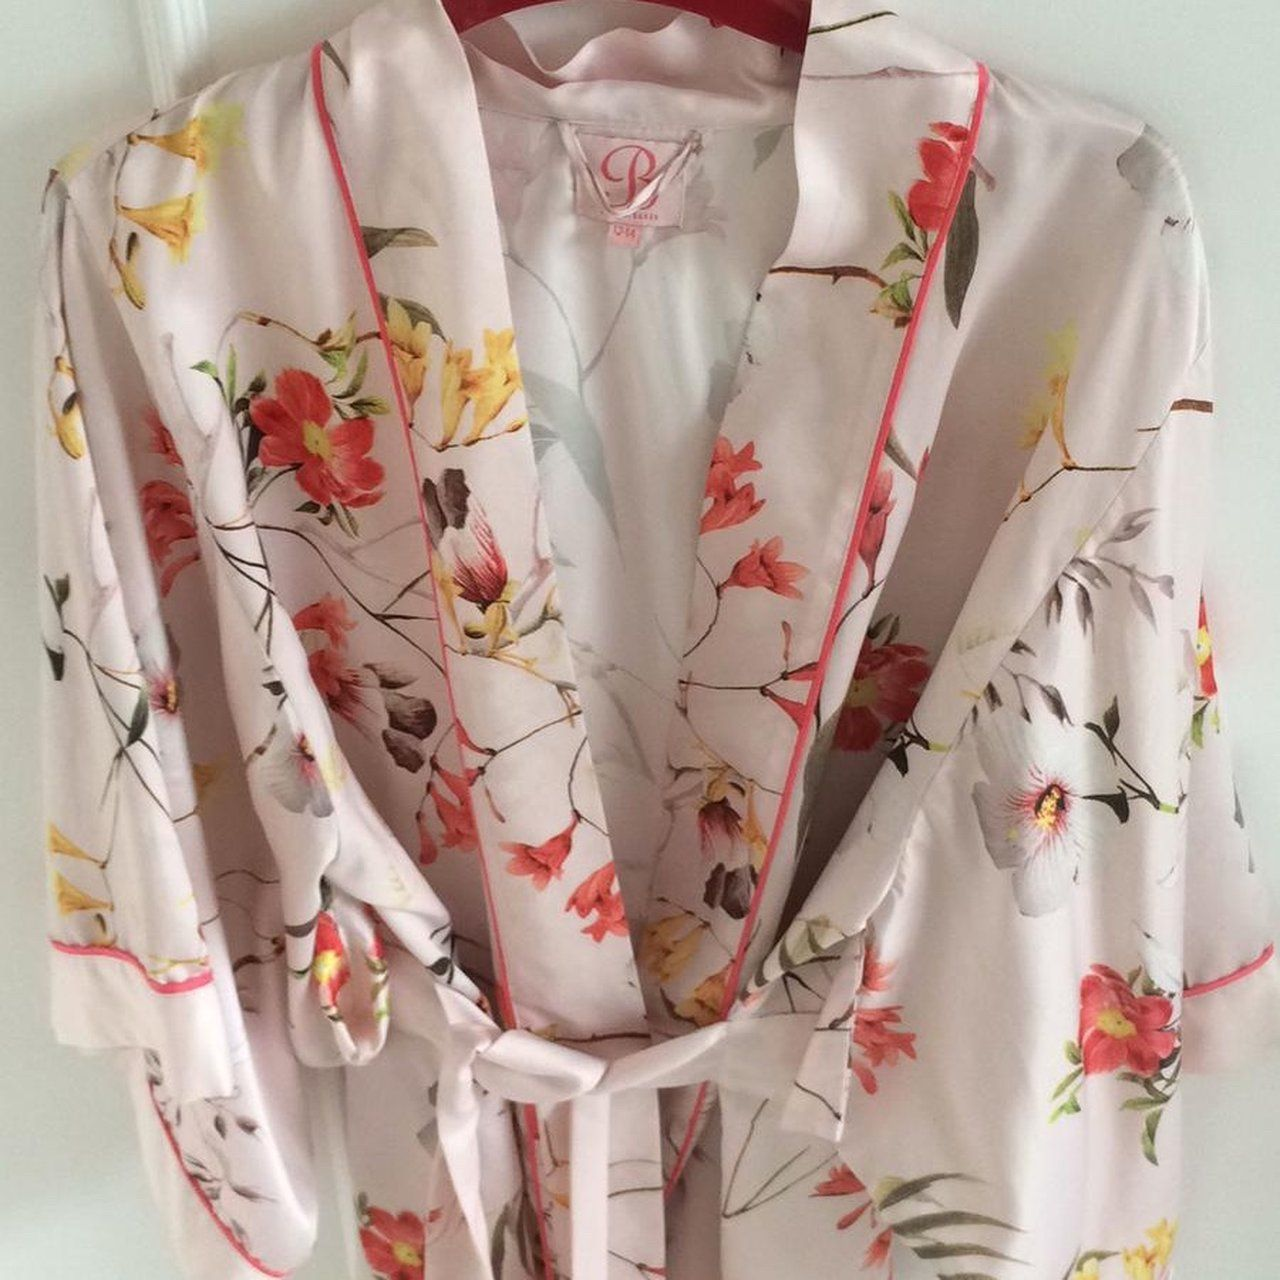 21dc90afb54 Ted Baker dressing gown for sale. Light and pretty. Size but - Depop